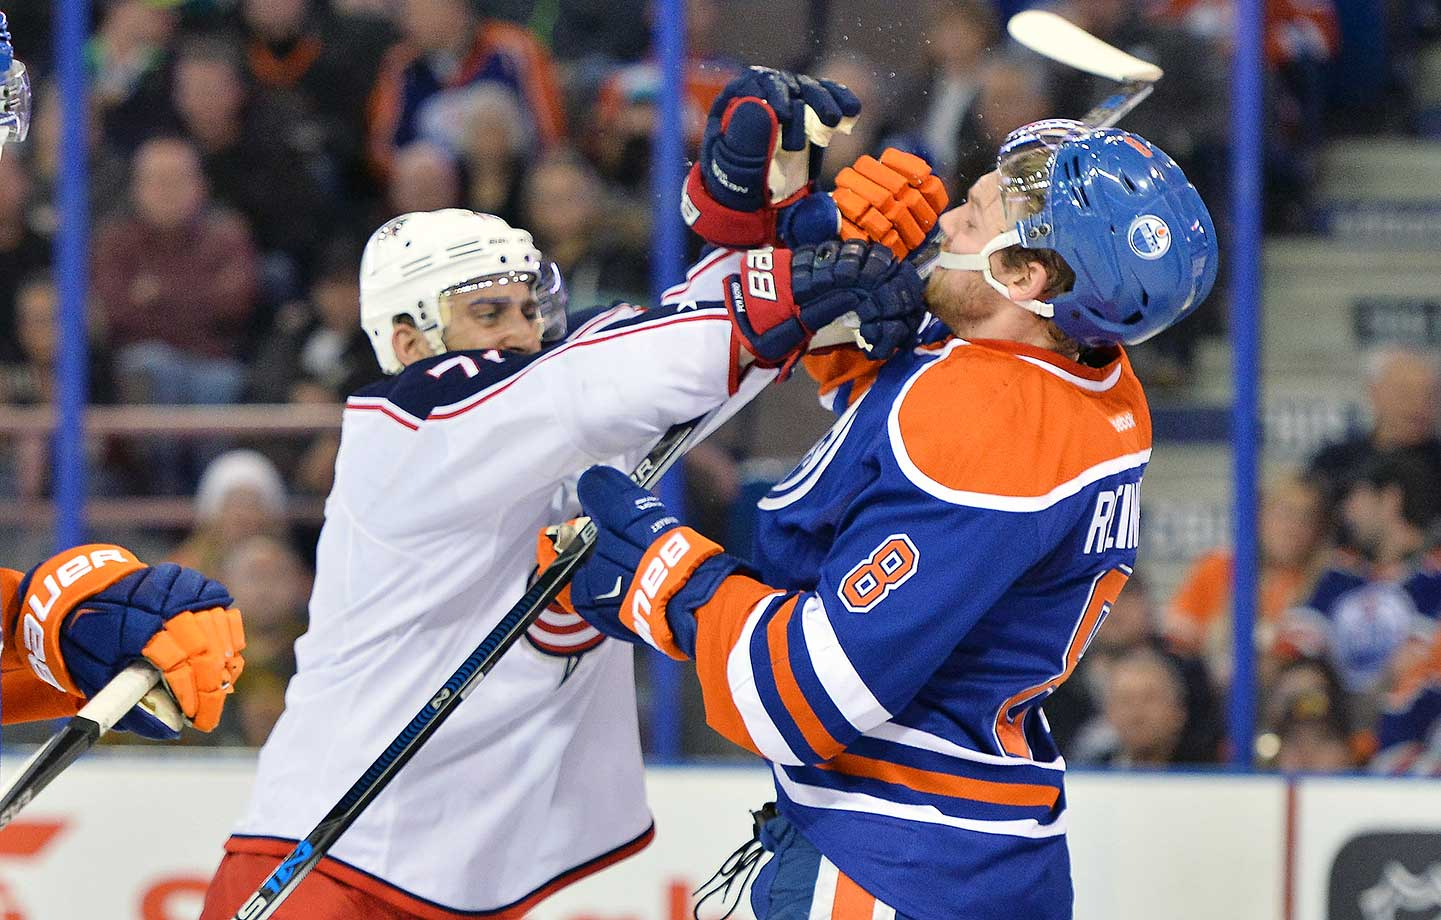 Columbus Blue Jackets winger Nick Foligno punches Edmonton Oilers defenseman Griffin Reinhart at Rexall Place in Edmonton, Alberta, Canada.